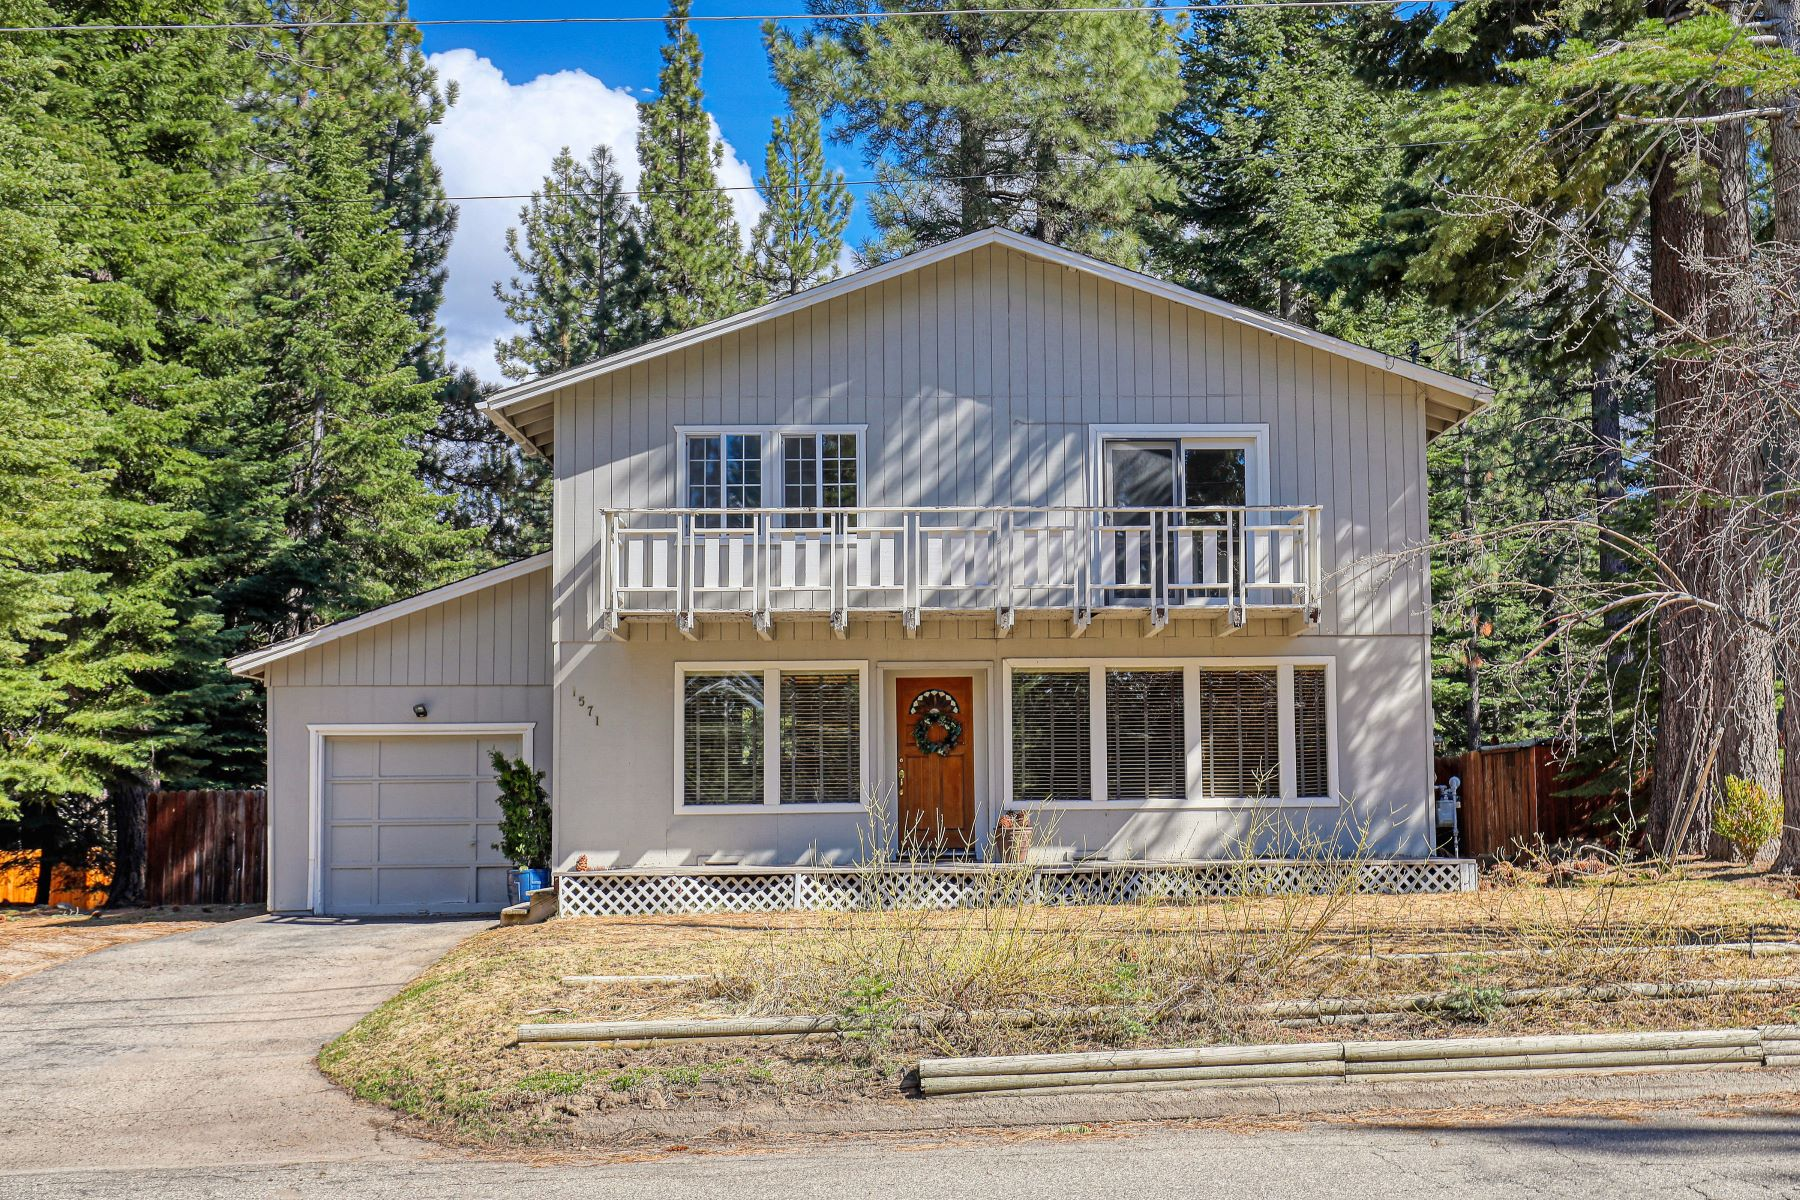 Single Family Homes for Active at Elevated in Desirable South Lake Tahoe Area 1571 Skyline Drive South Lake Tahoe, California 96150 United States